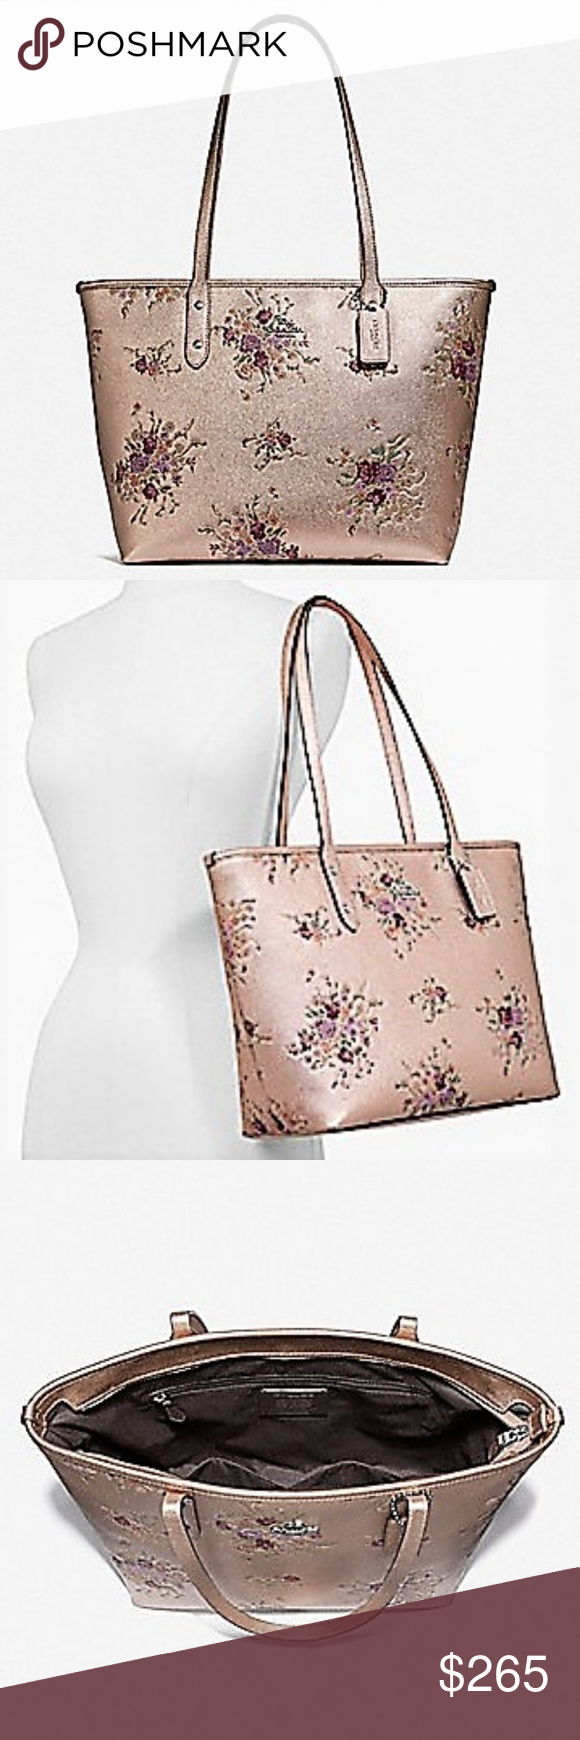 1f4051c9 NWT COACH CITY ZIP TOTE WITH FLORAL BUNDLE PRINT NWT COACH CITY ZIP ...